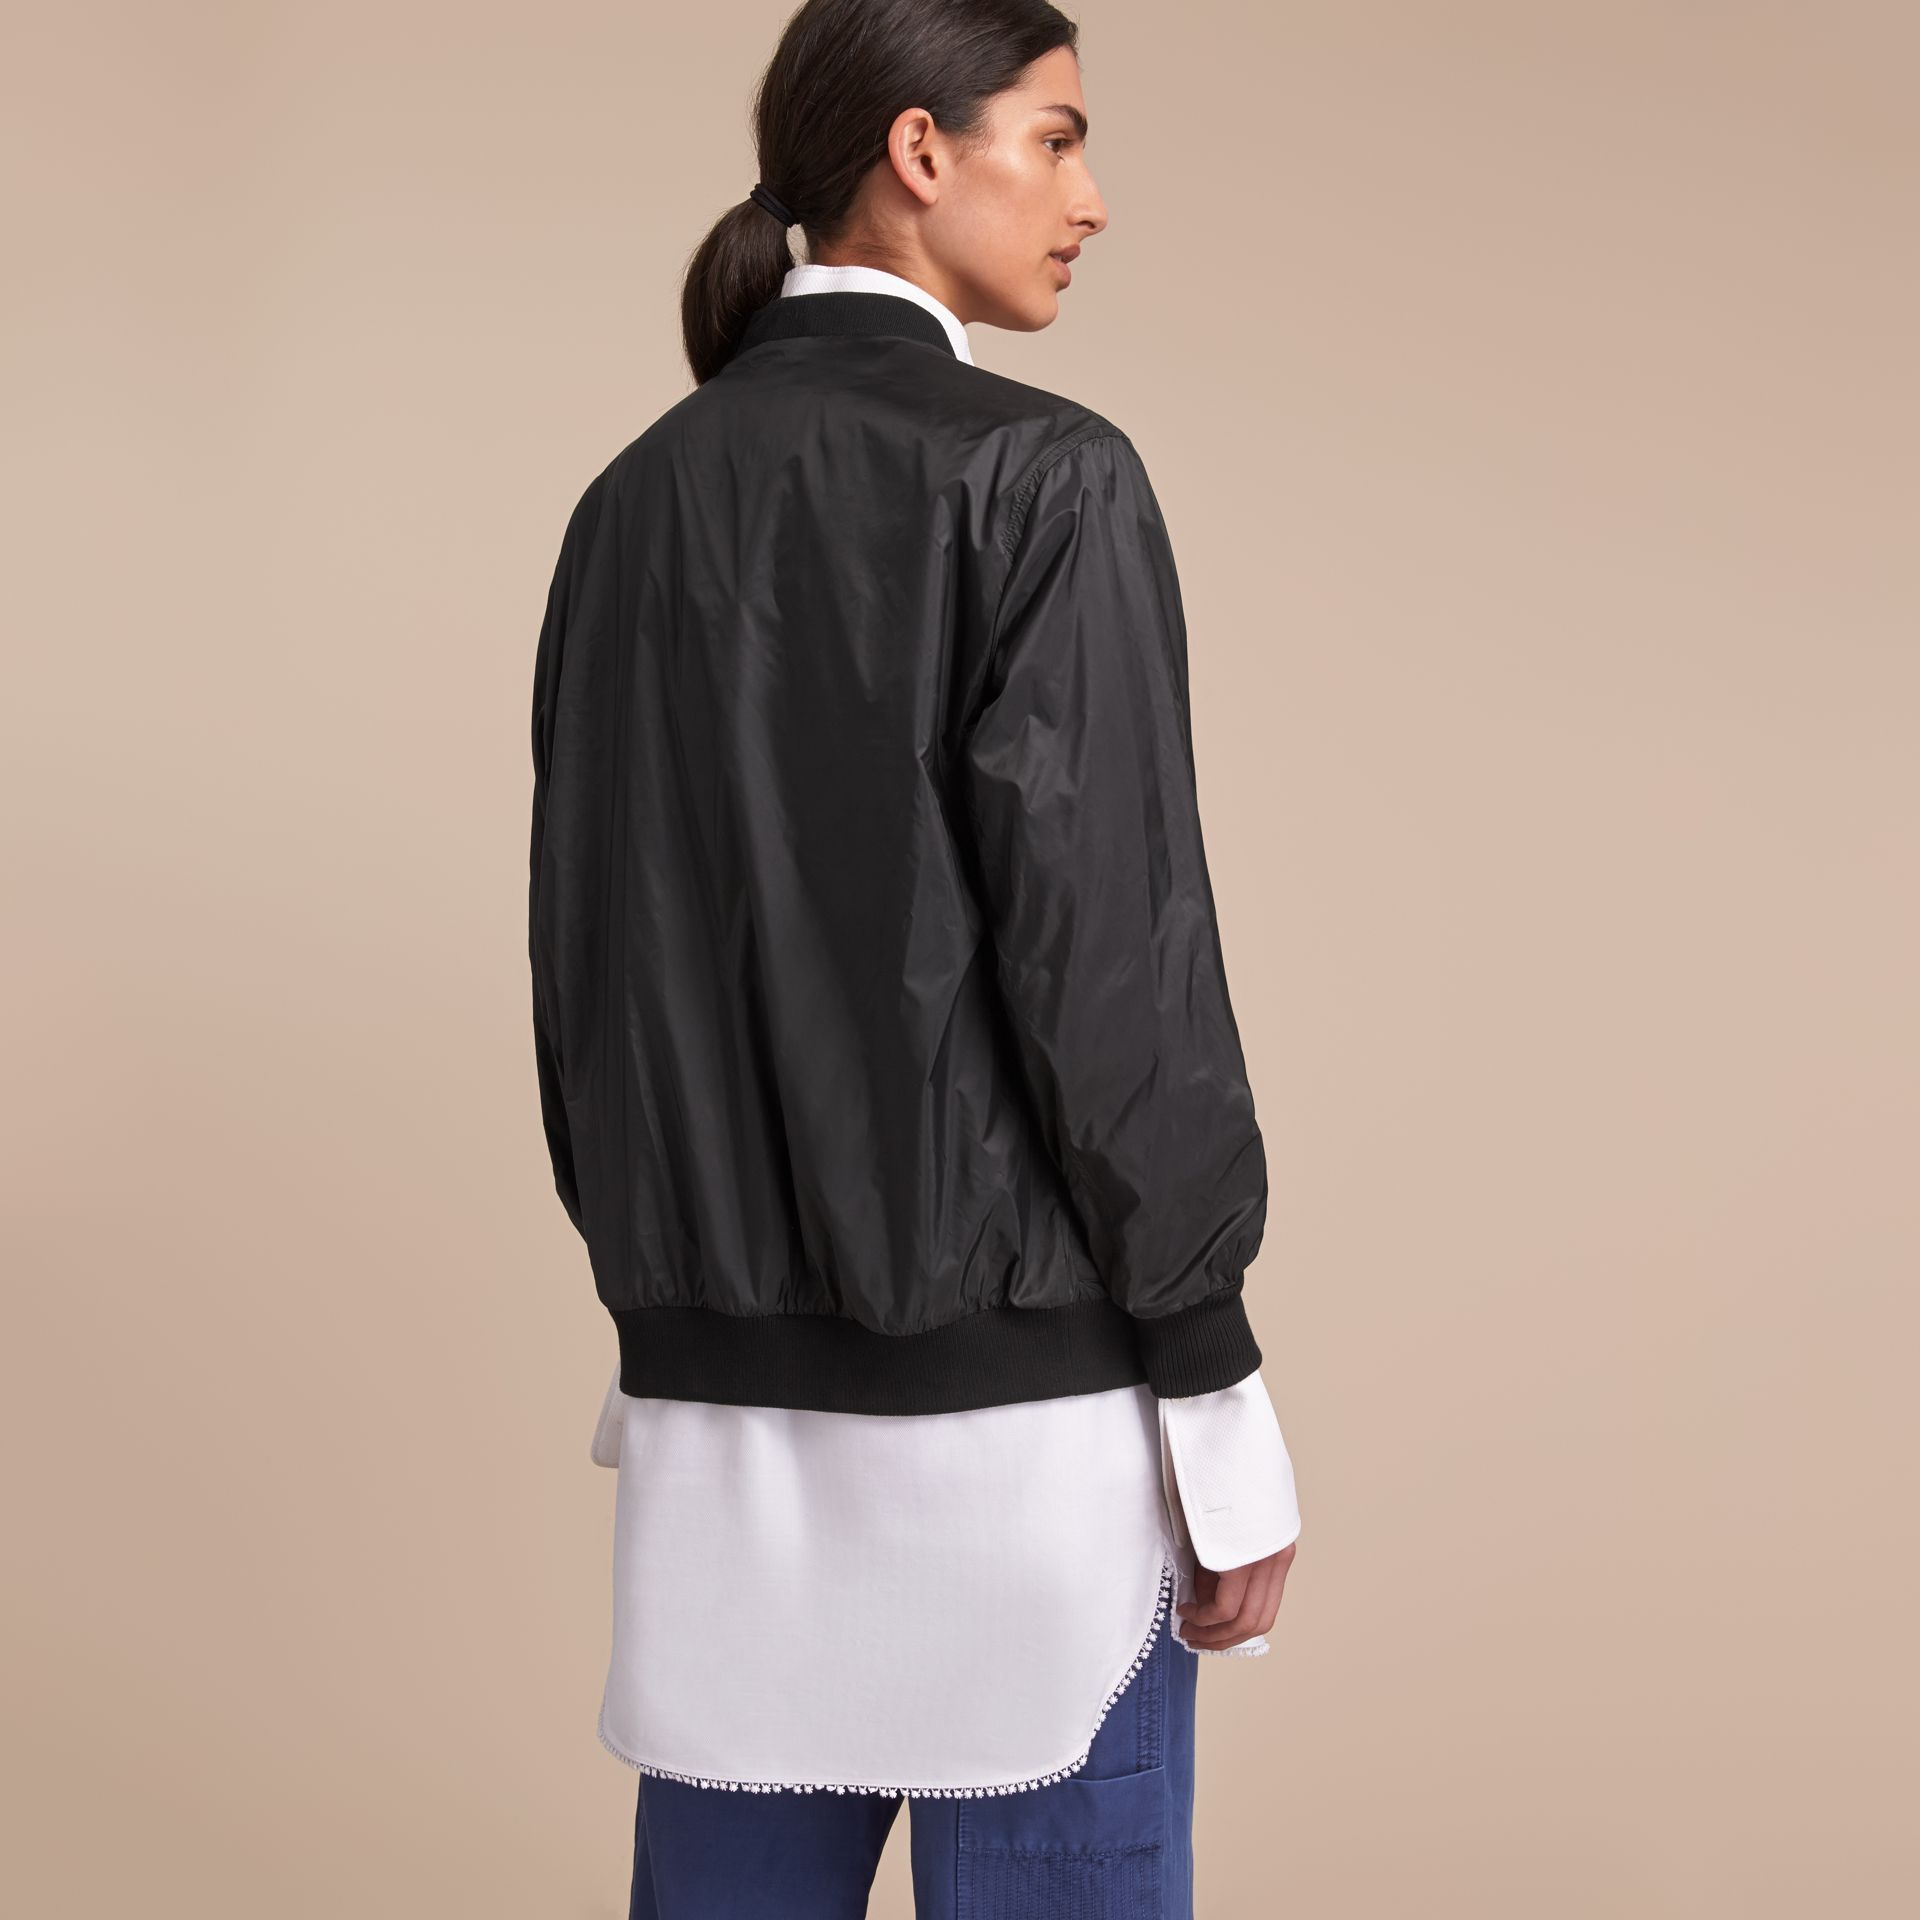 Lightweight Bomber Jacket in Black - Women | Burberry Canada - gallery image 3